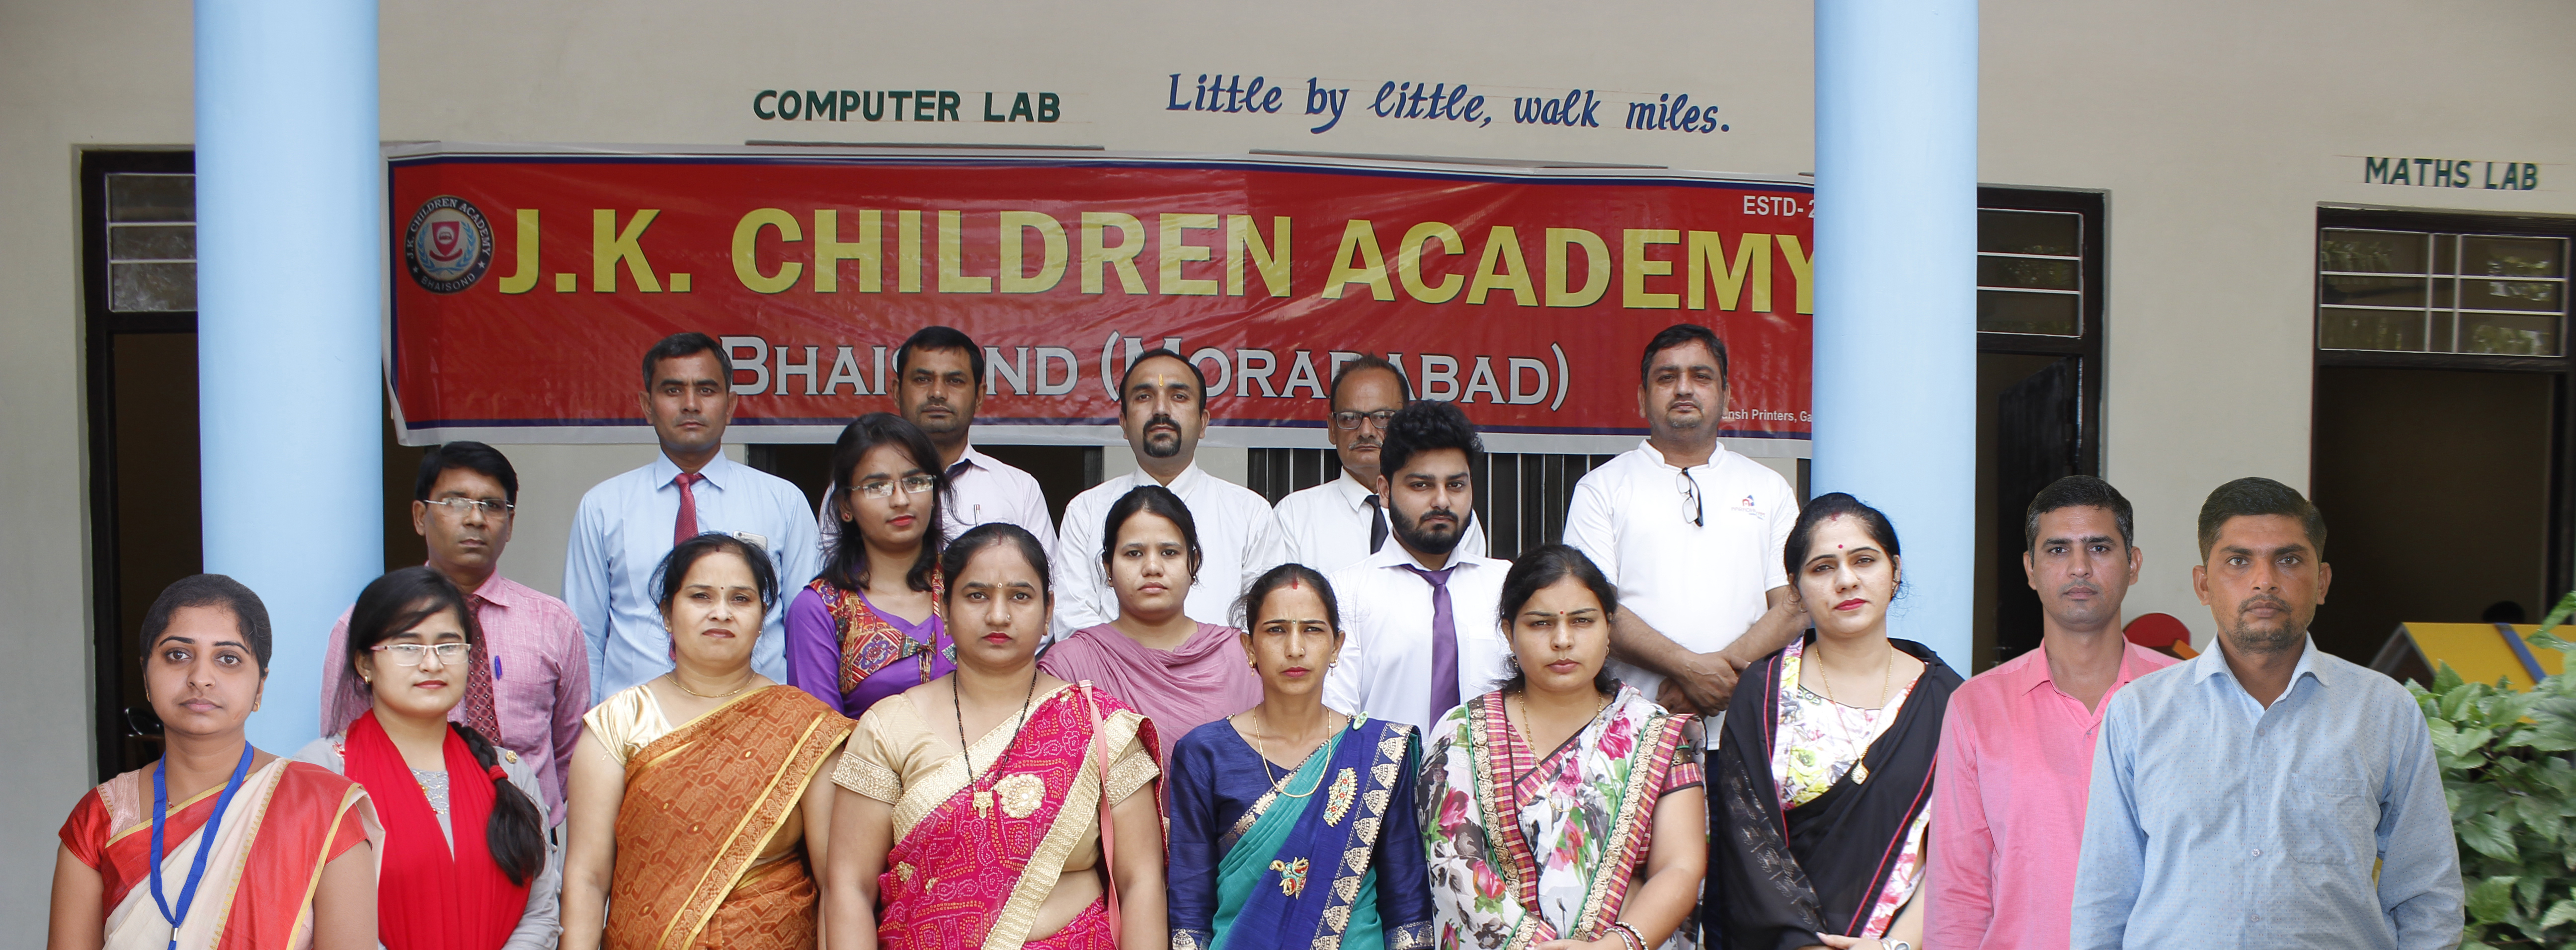 J.K.Children Academy in Moradabad